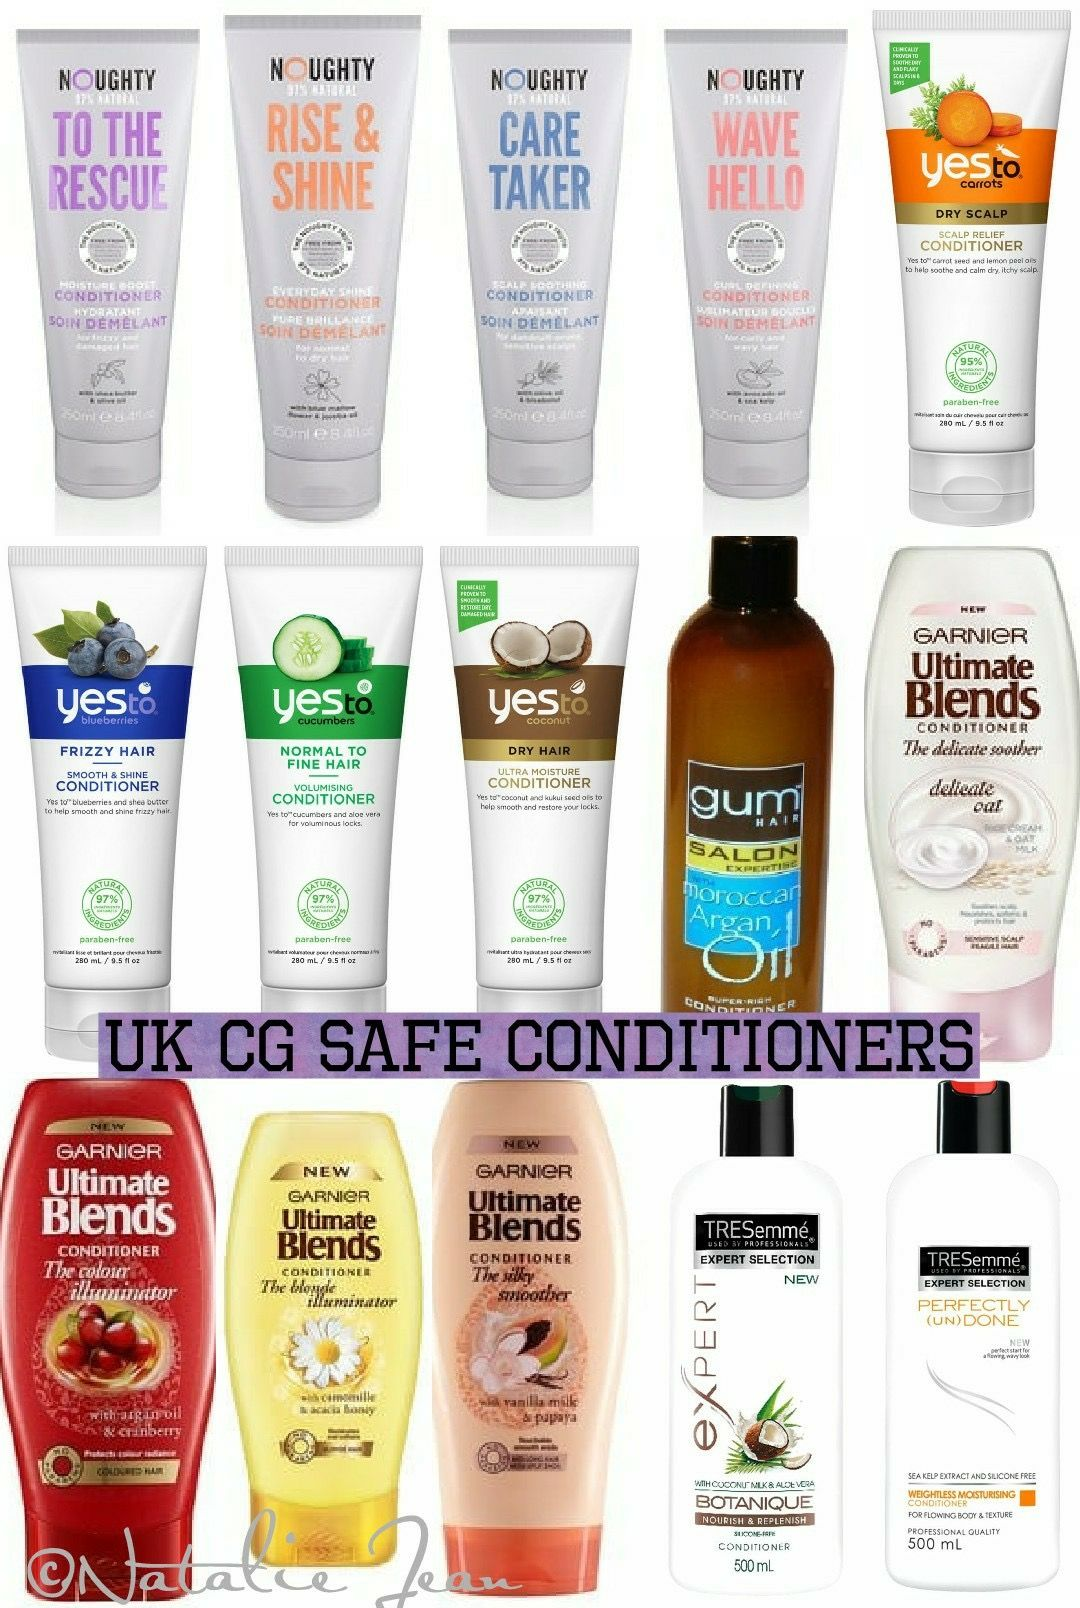 Pin By Susanna Lofgren On Curly Hair Curly Hair Products Uk Curly Hair Styles Curly Girl Method